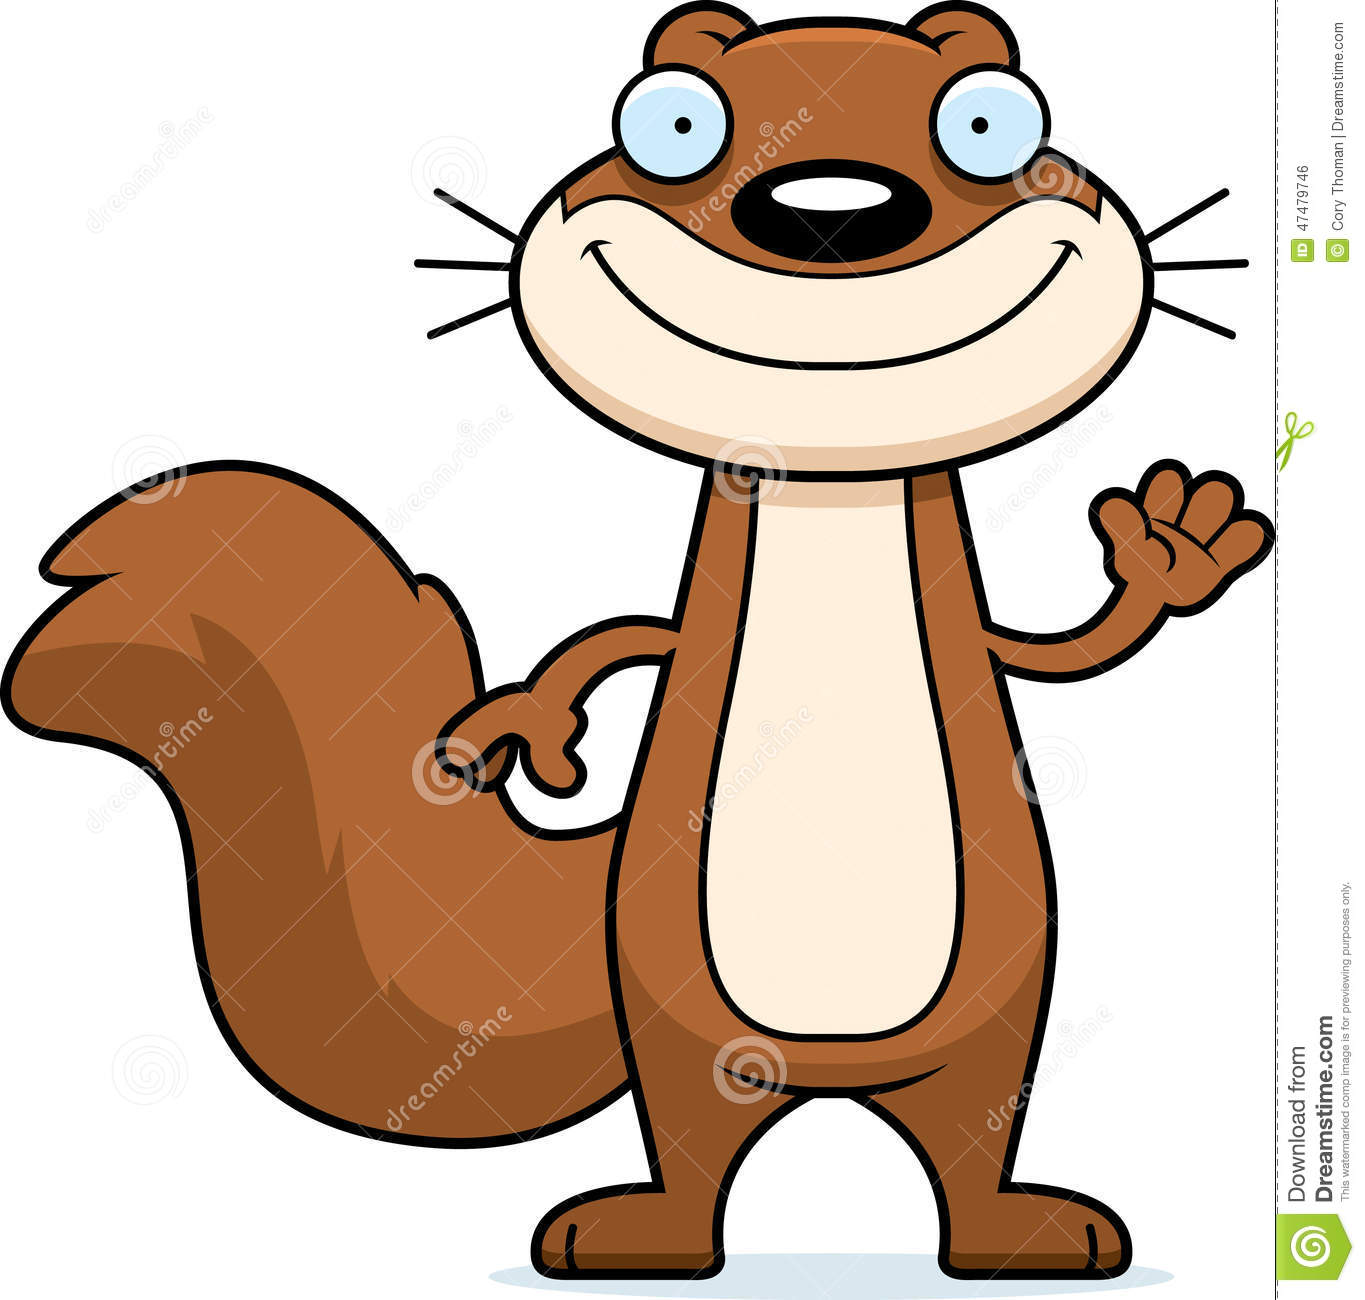 Cartoon Squirrel Waving Stock Vector - Image: 47479746